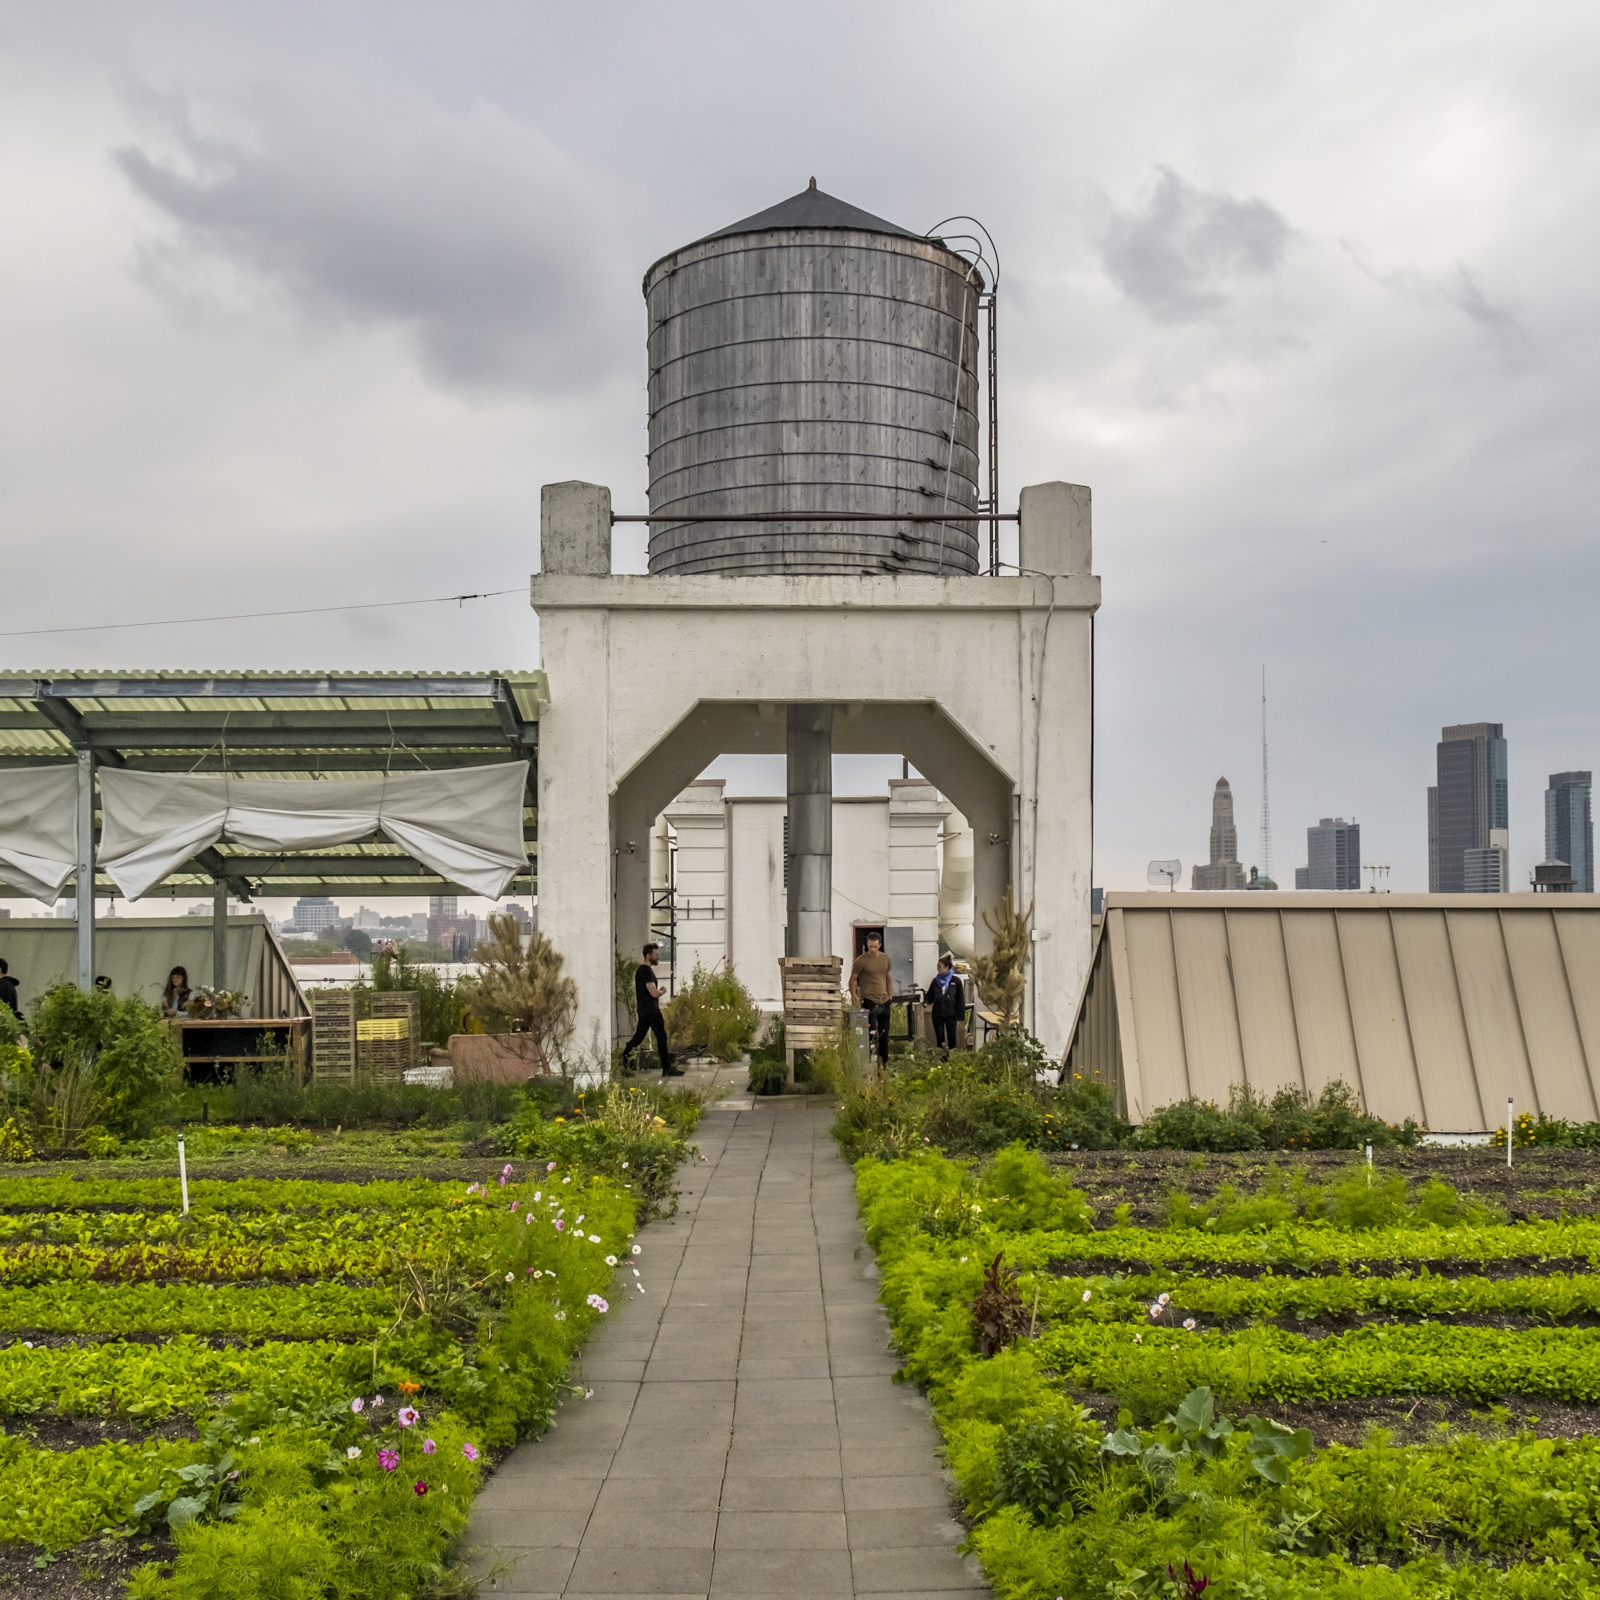 Venue: The Brooklyn Grange